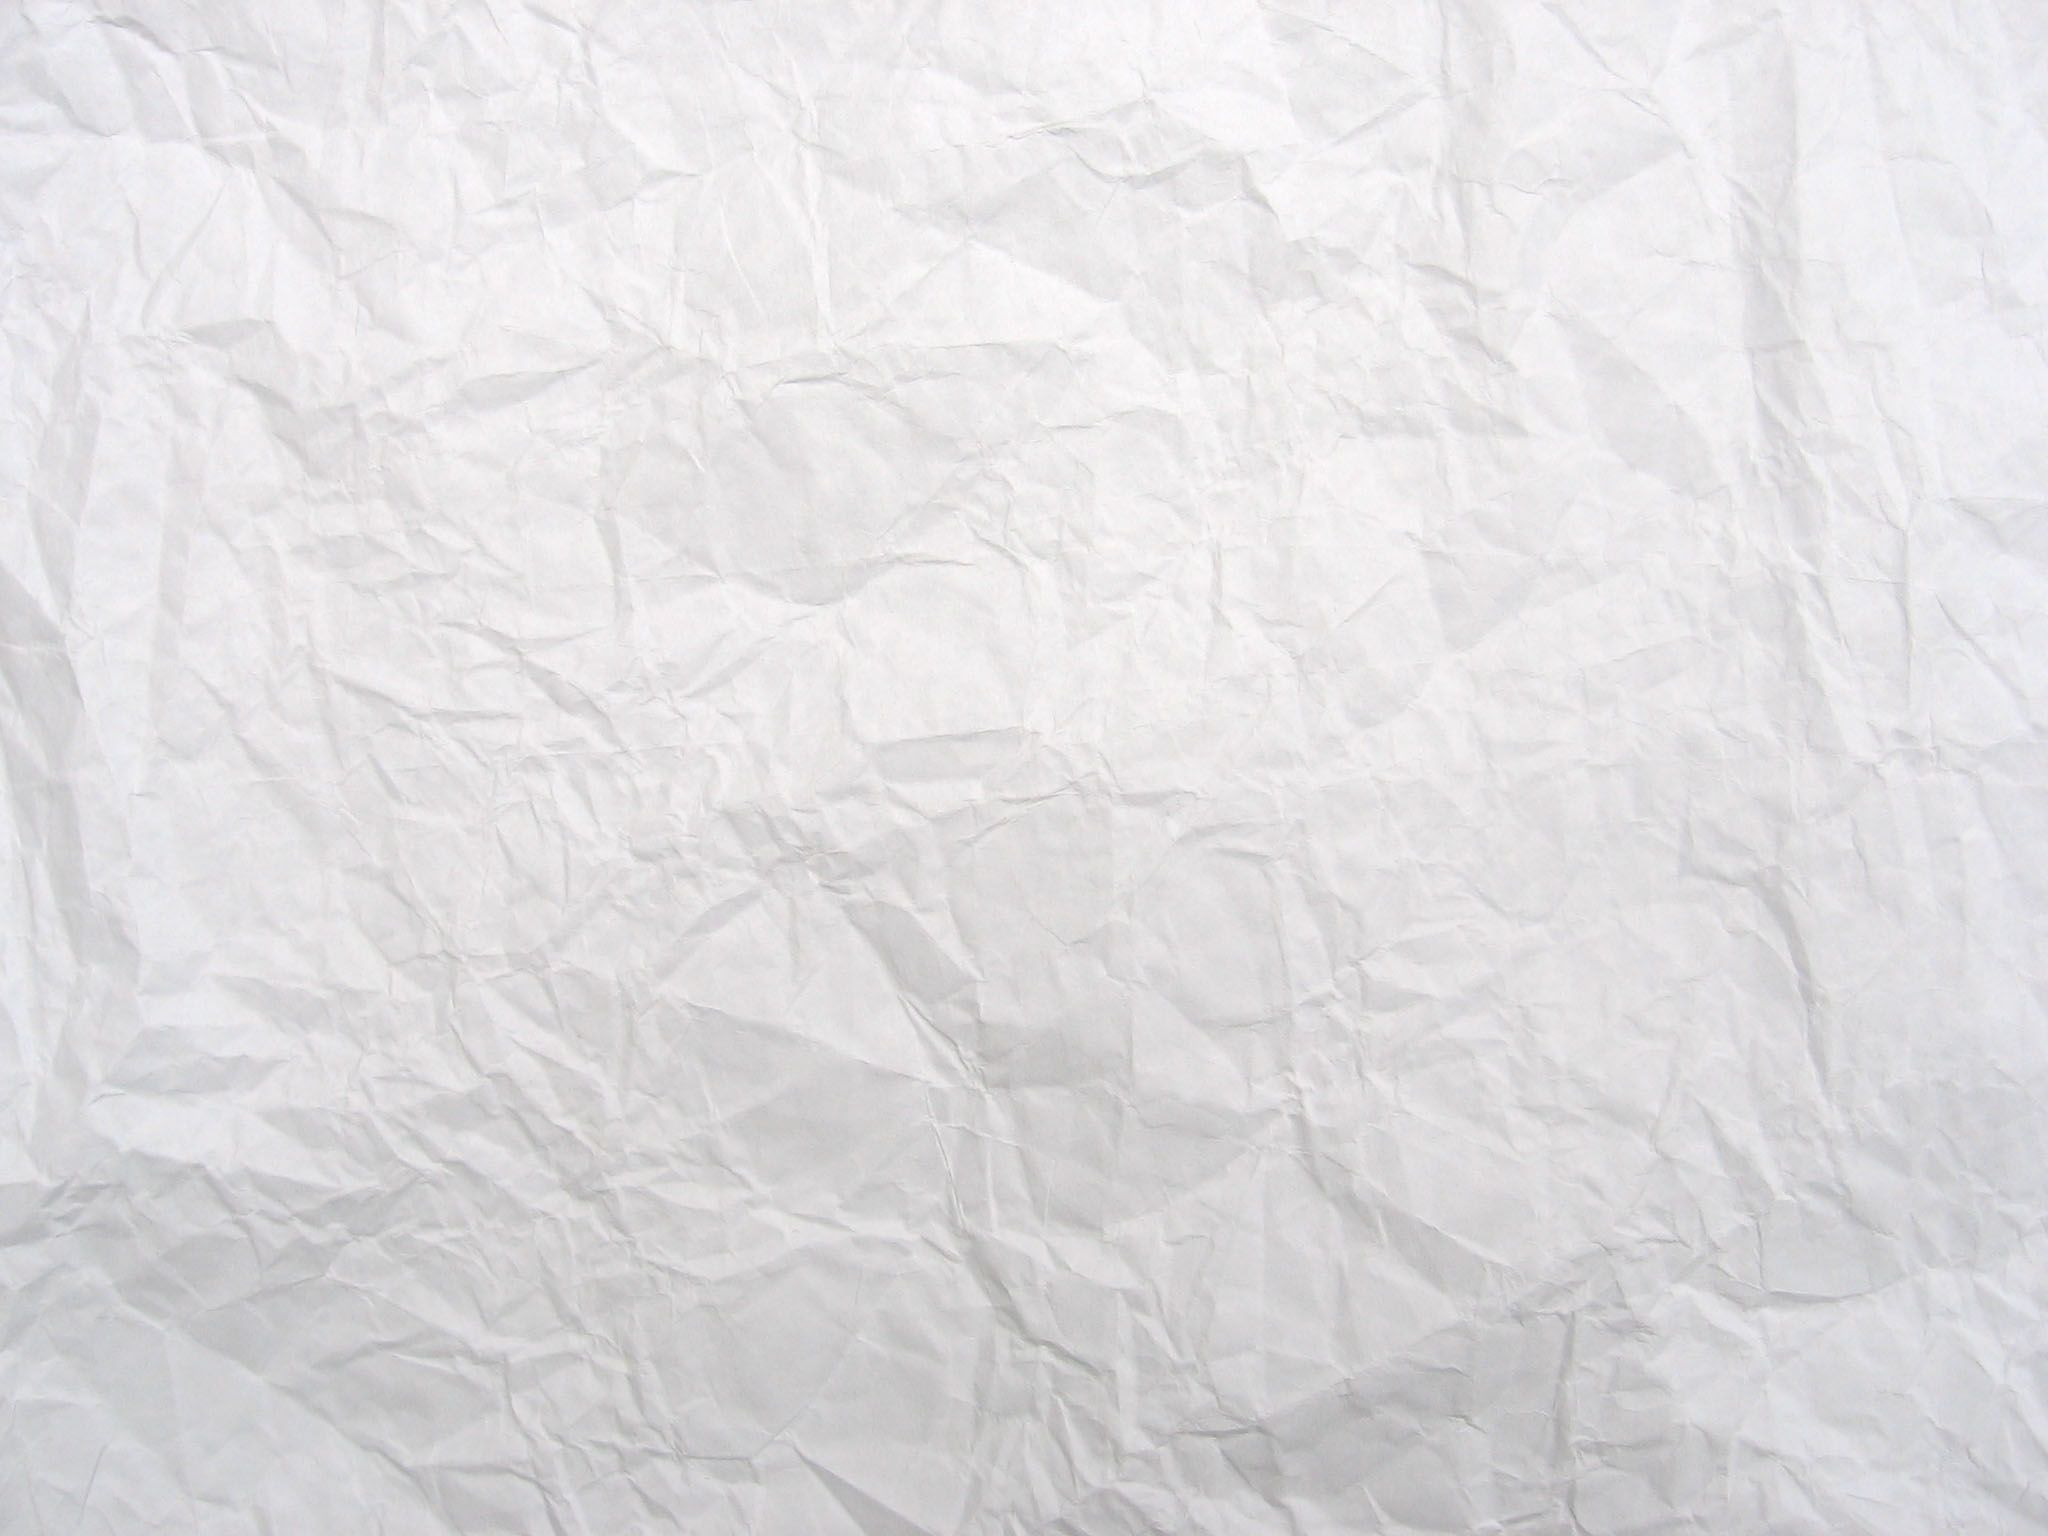 2048x1536 a paper structure, paper texture, the old rumpled paper to ...